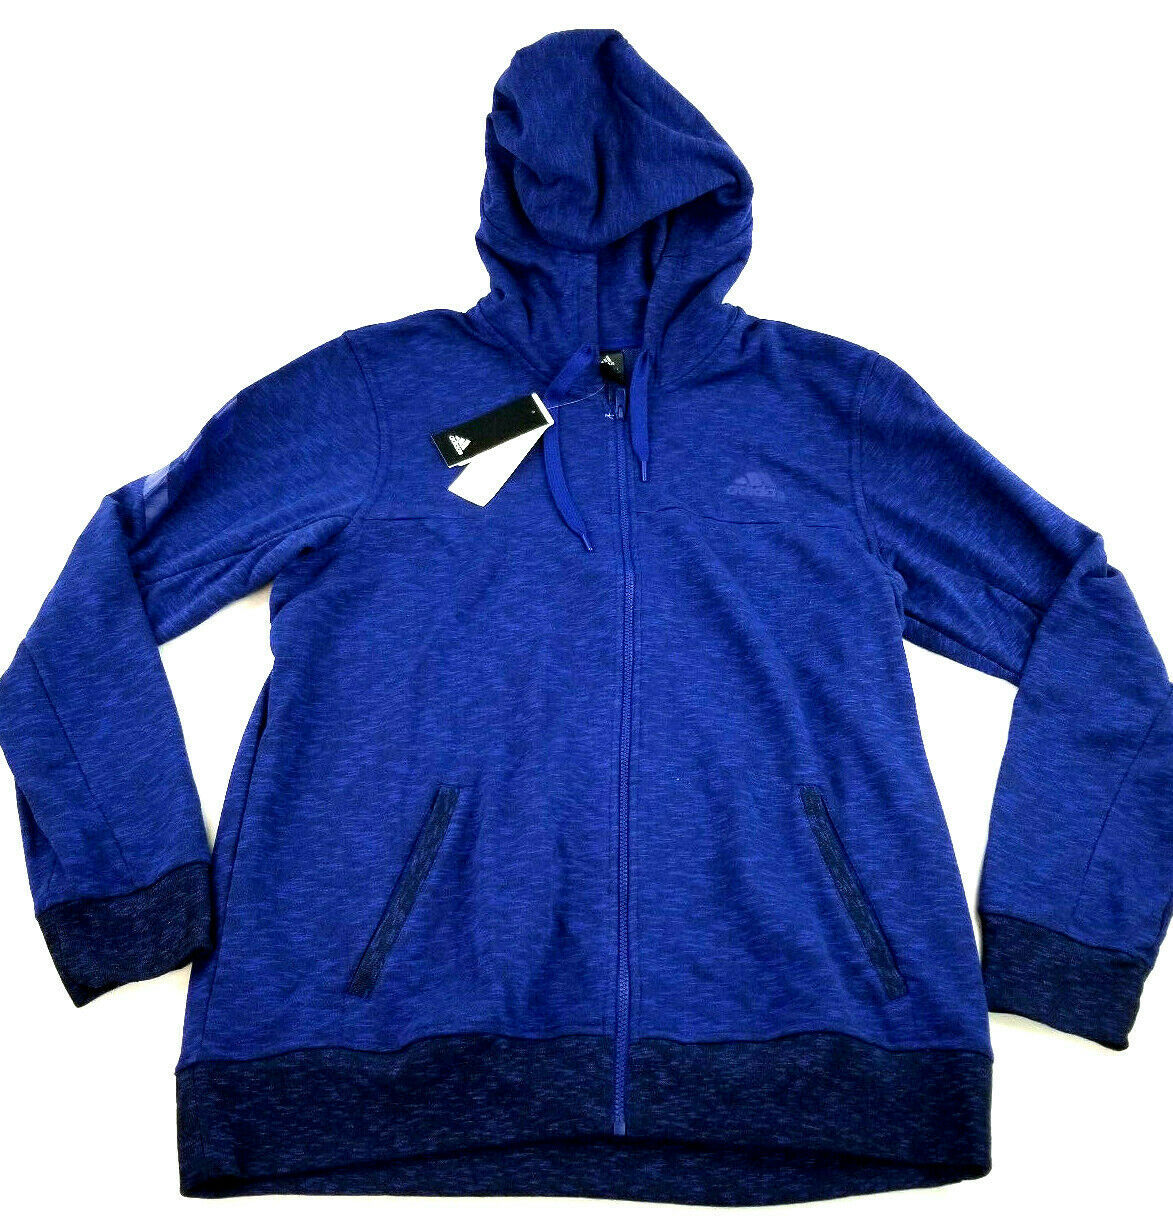 new ADIDAS men jacket hoodie full zip CW9658 blue 2XL MSRP $75 image 1